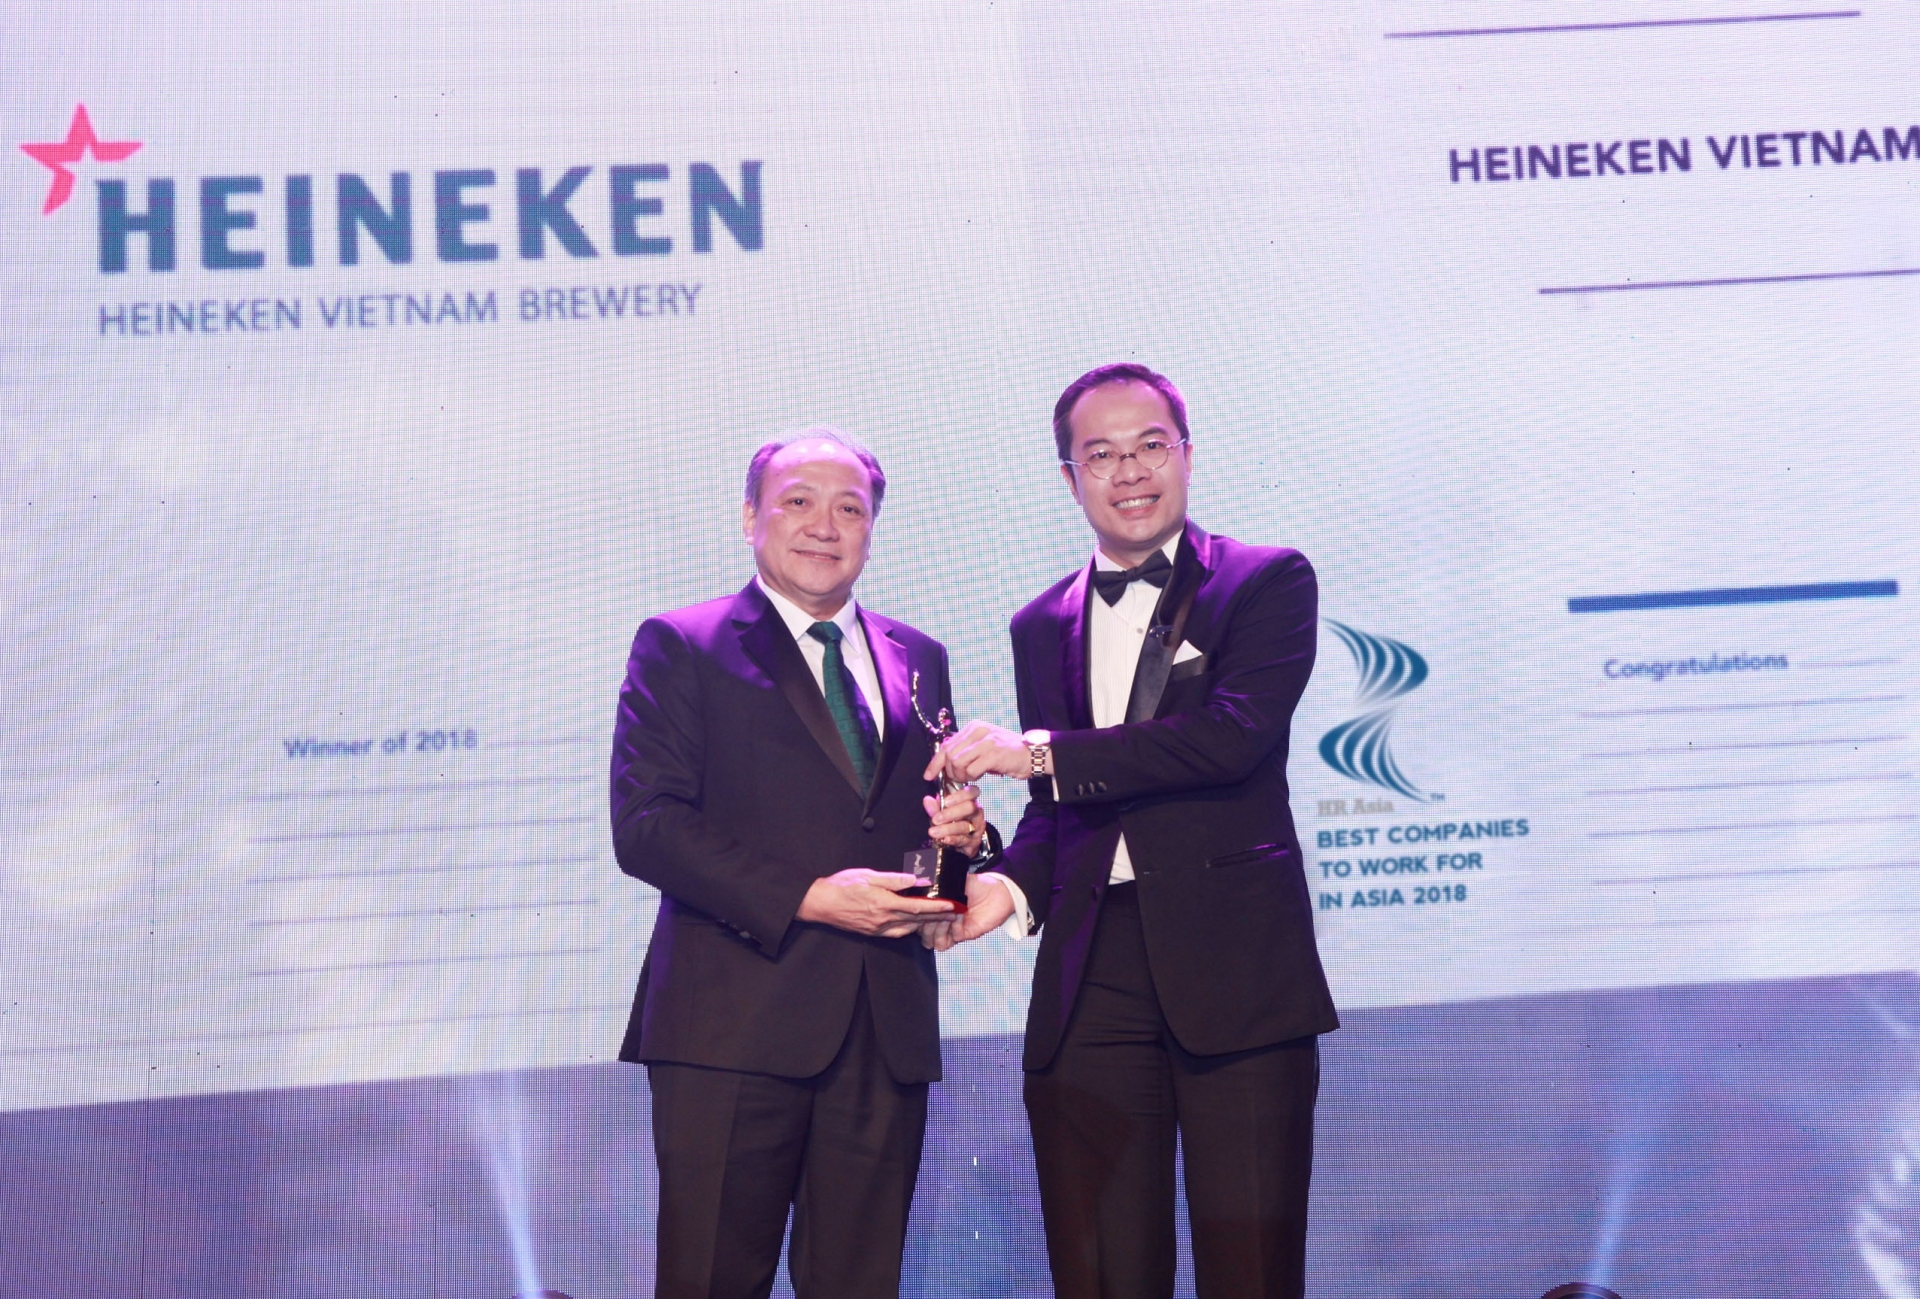 heineken vietnam honoured amongst best companies to work for in asia